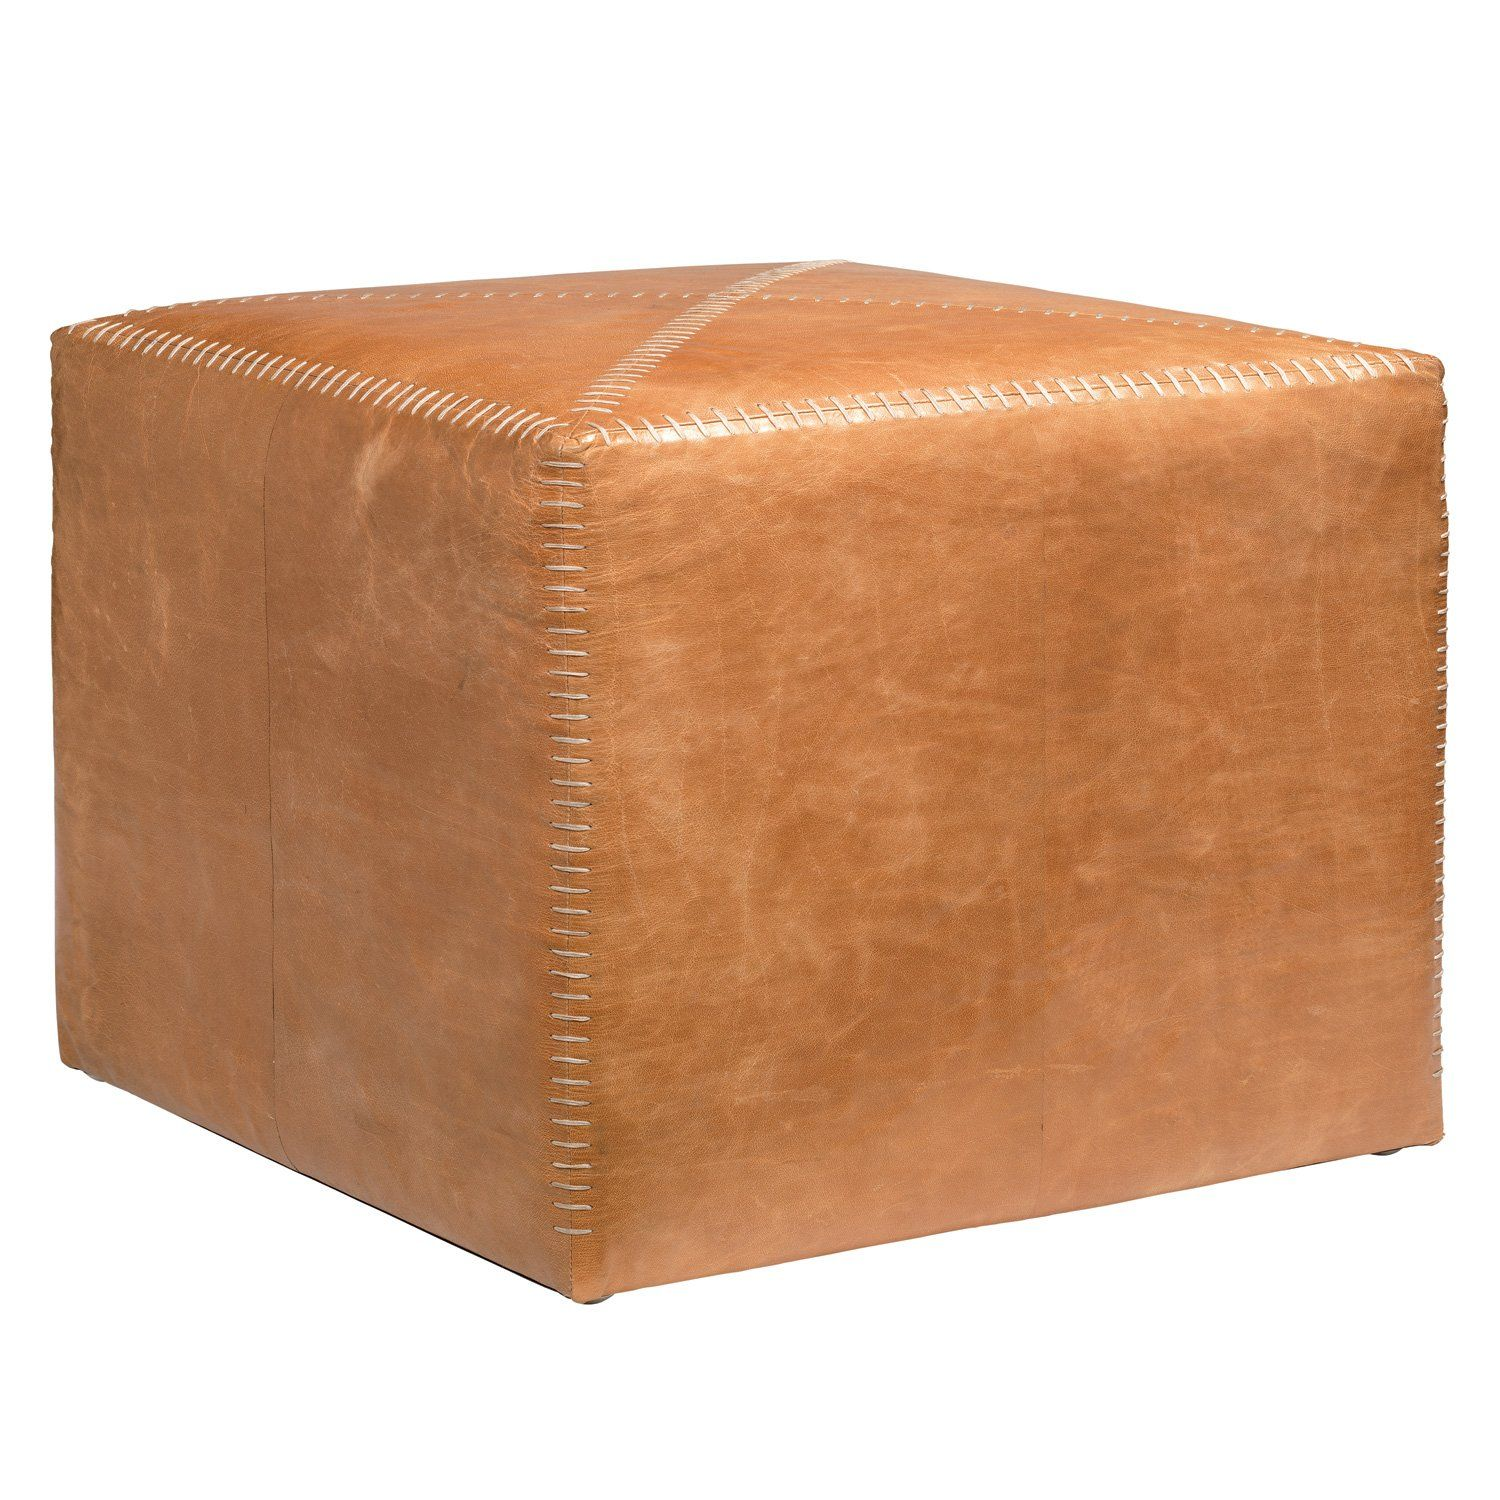 Swell Jamie Young Leather Buff Ottoman F U R N I S H Leather Ncnpc Chair Design For Home Ncnpcorg